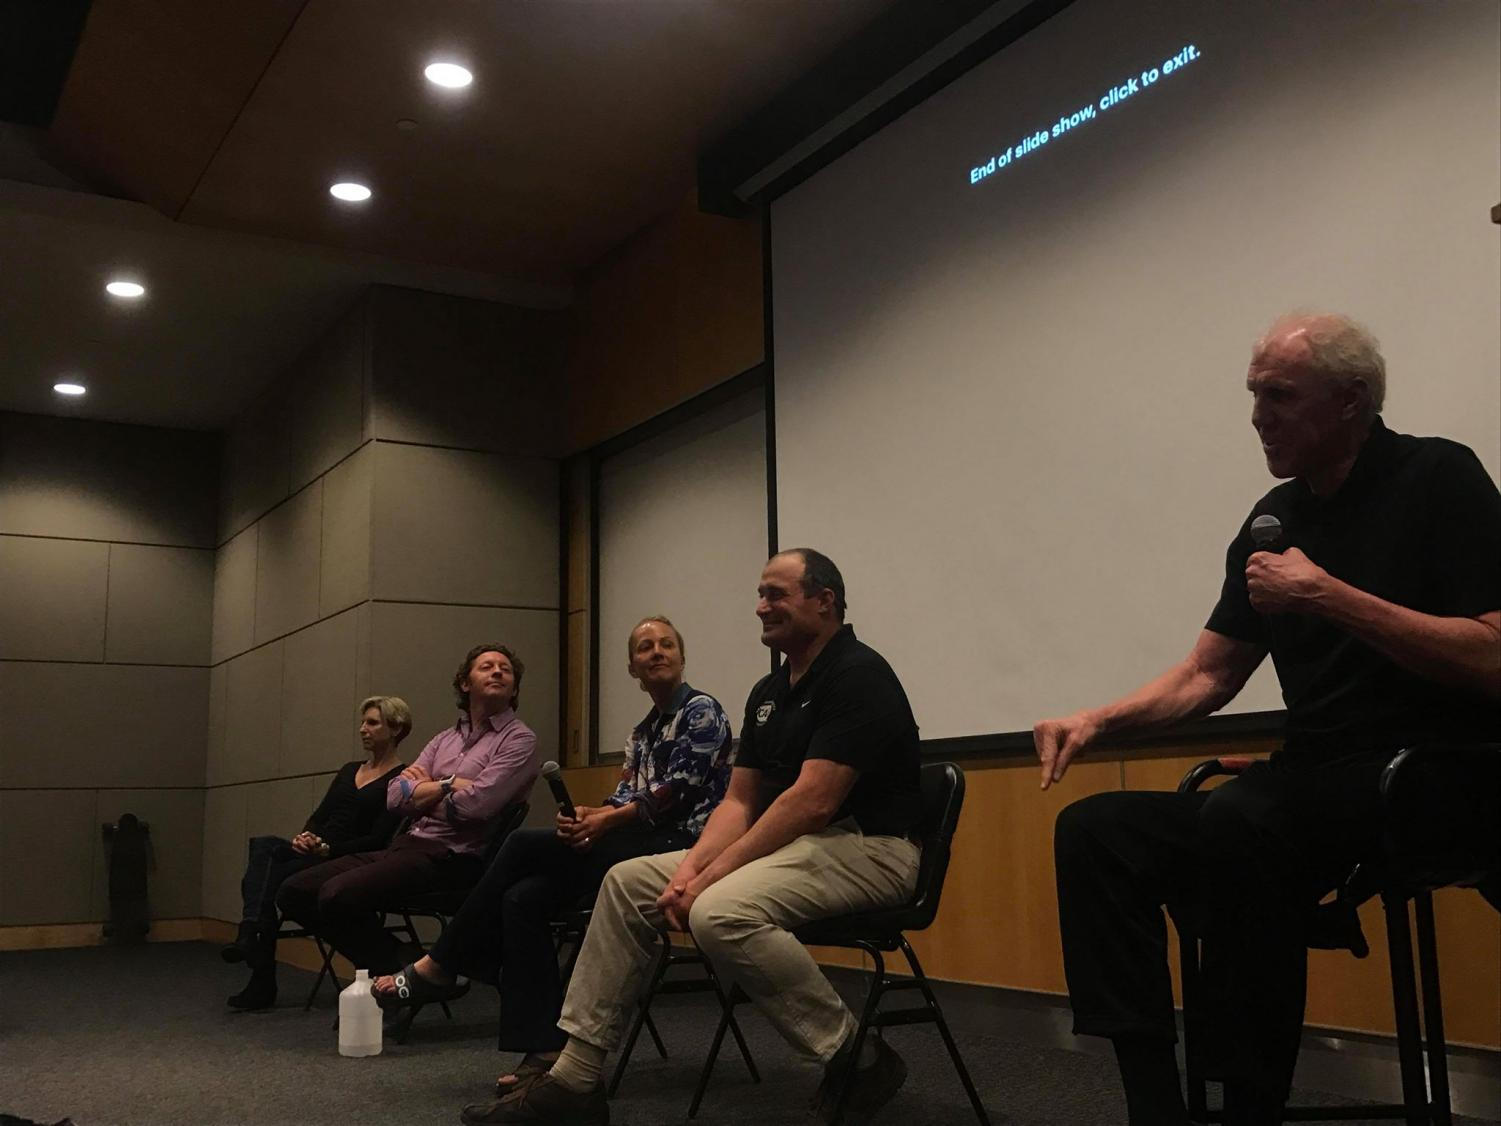 From left to right, Paula Newby Fraser, Simon Marshall, Leslie Patterson, Nico Marcolongo and Bill Walton discuss how former athletes deal with the ends of their careers at the